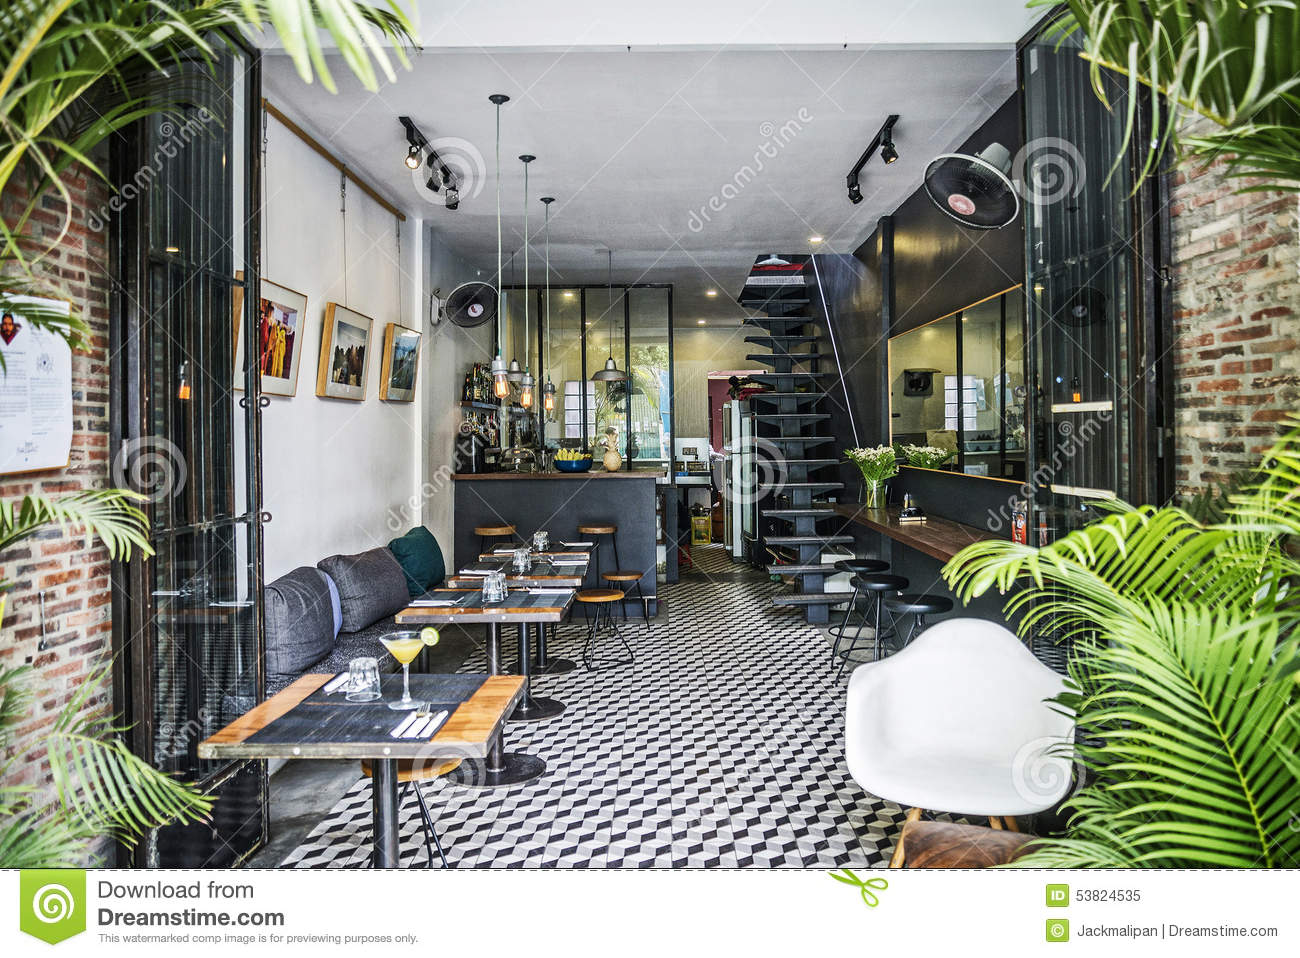 Retro interior design joy studio design gallery best for Interiores de restaurantes